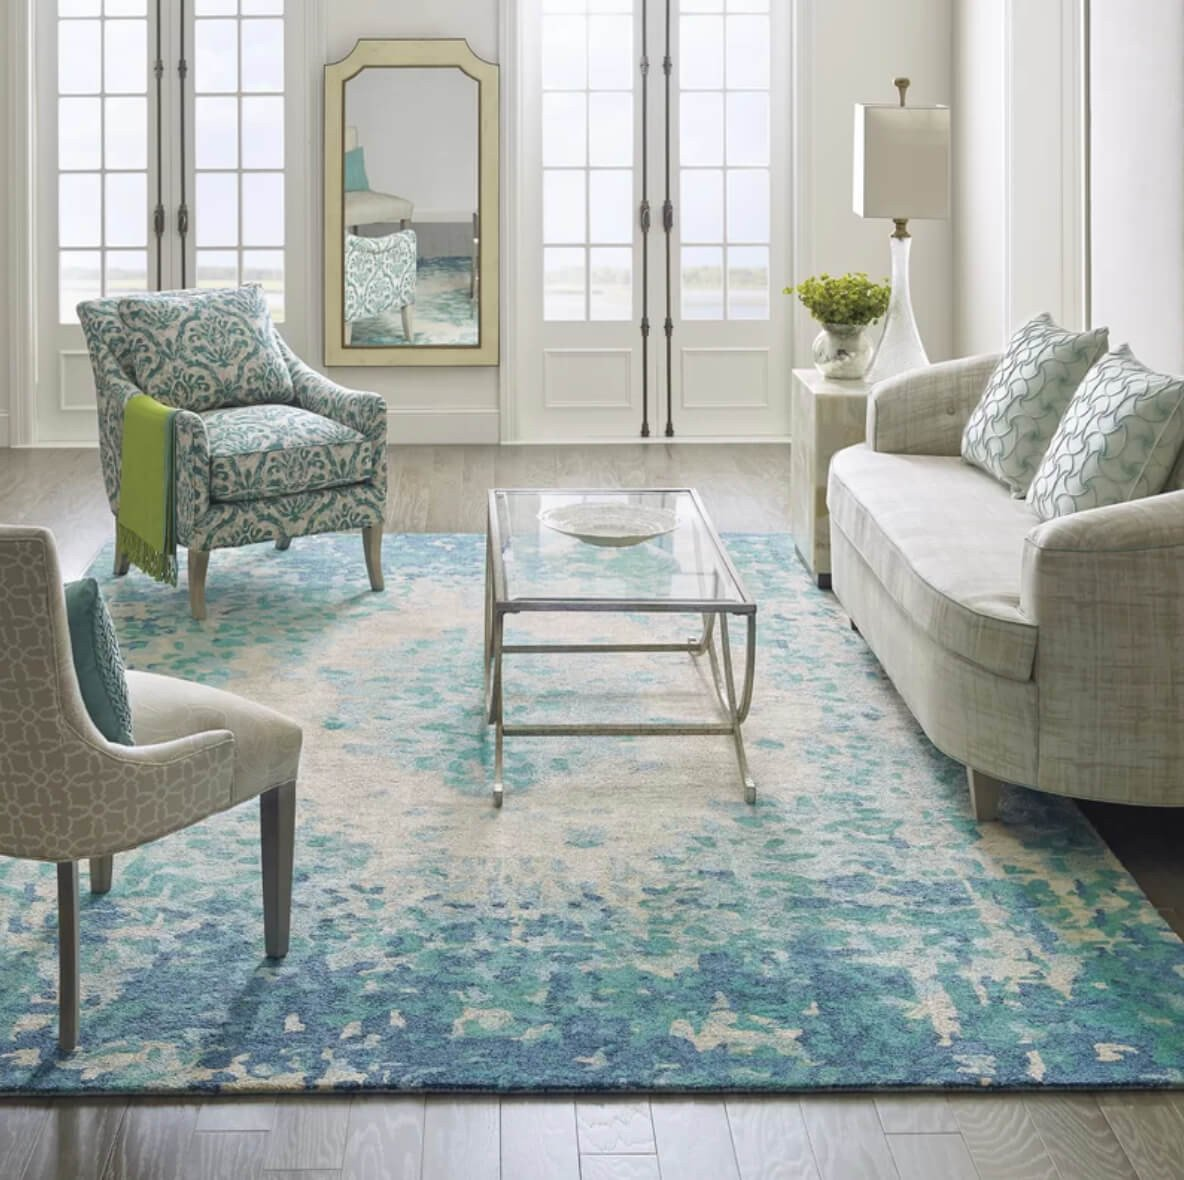 Rug for Living Room Ideas 12 Living Room Rug Ideas that Will Change Everything